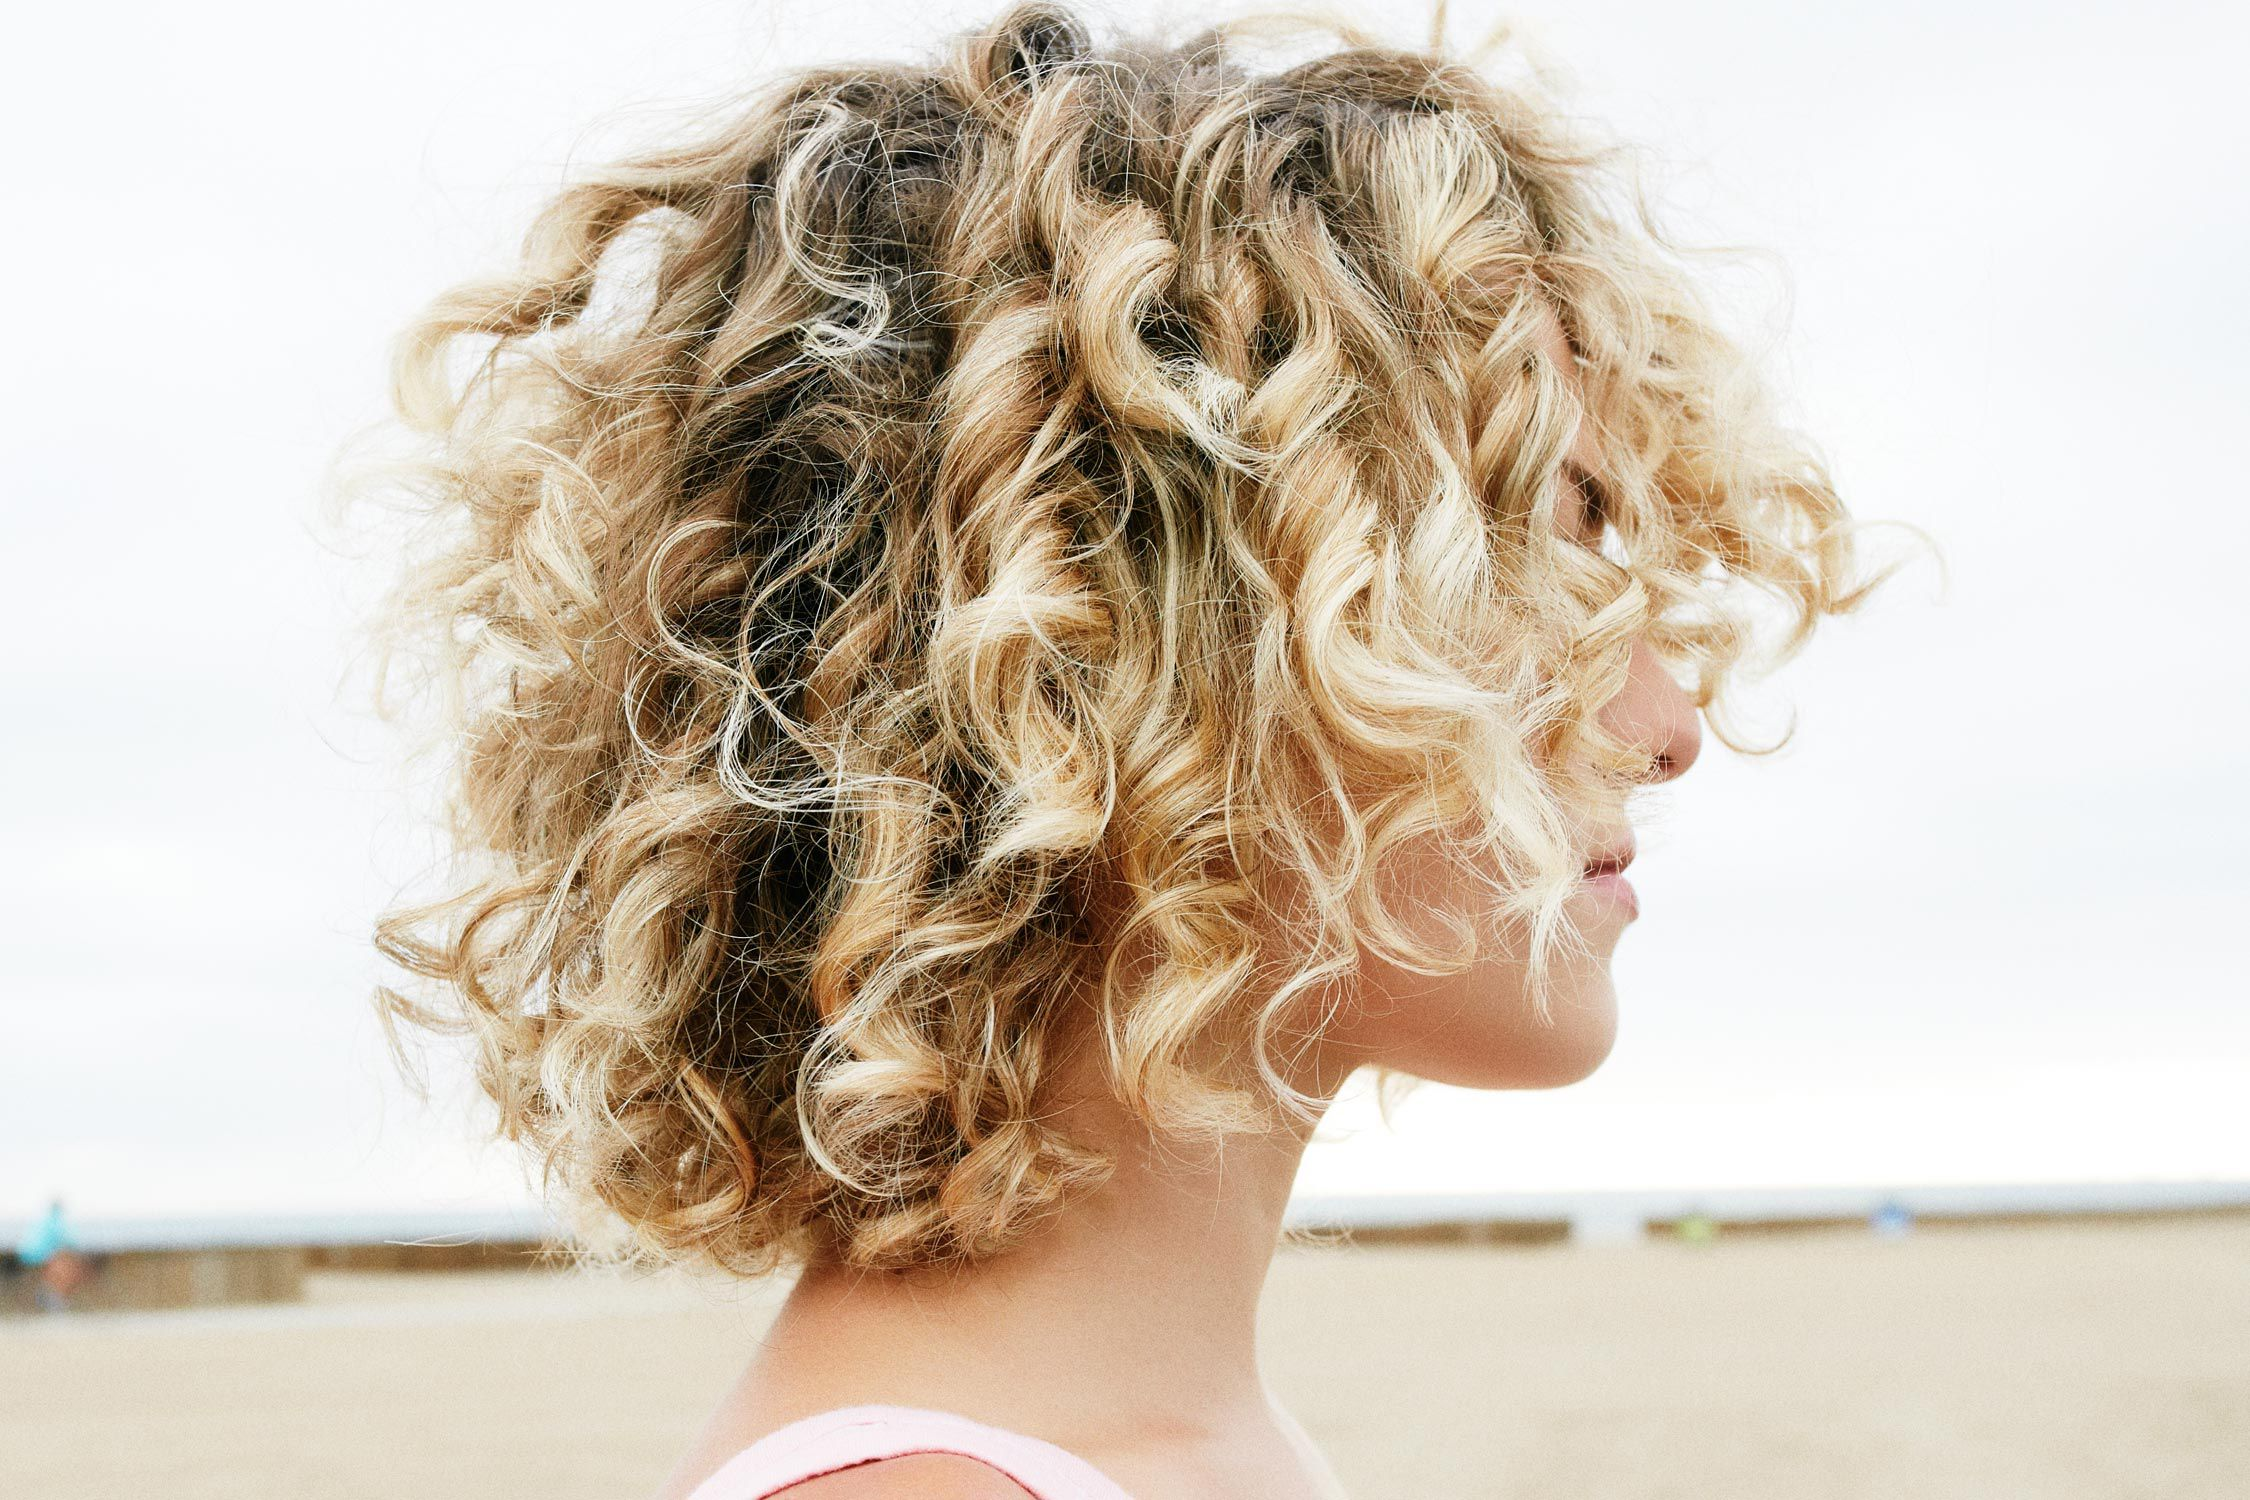 Want To Perm Your Hair Follow These Tips For Curls You Ll Love Permed Hairstyles Short Permed Hair Shoulder Length Hair